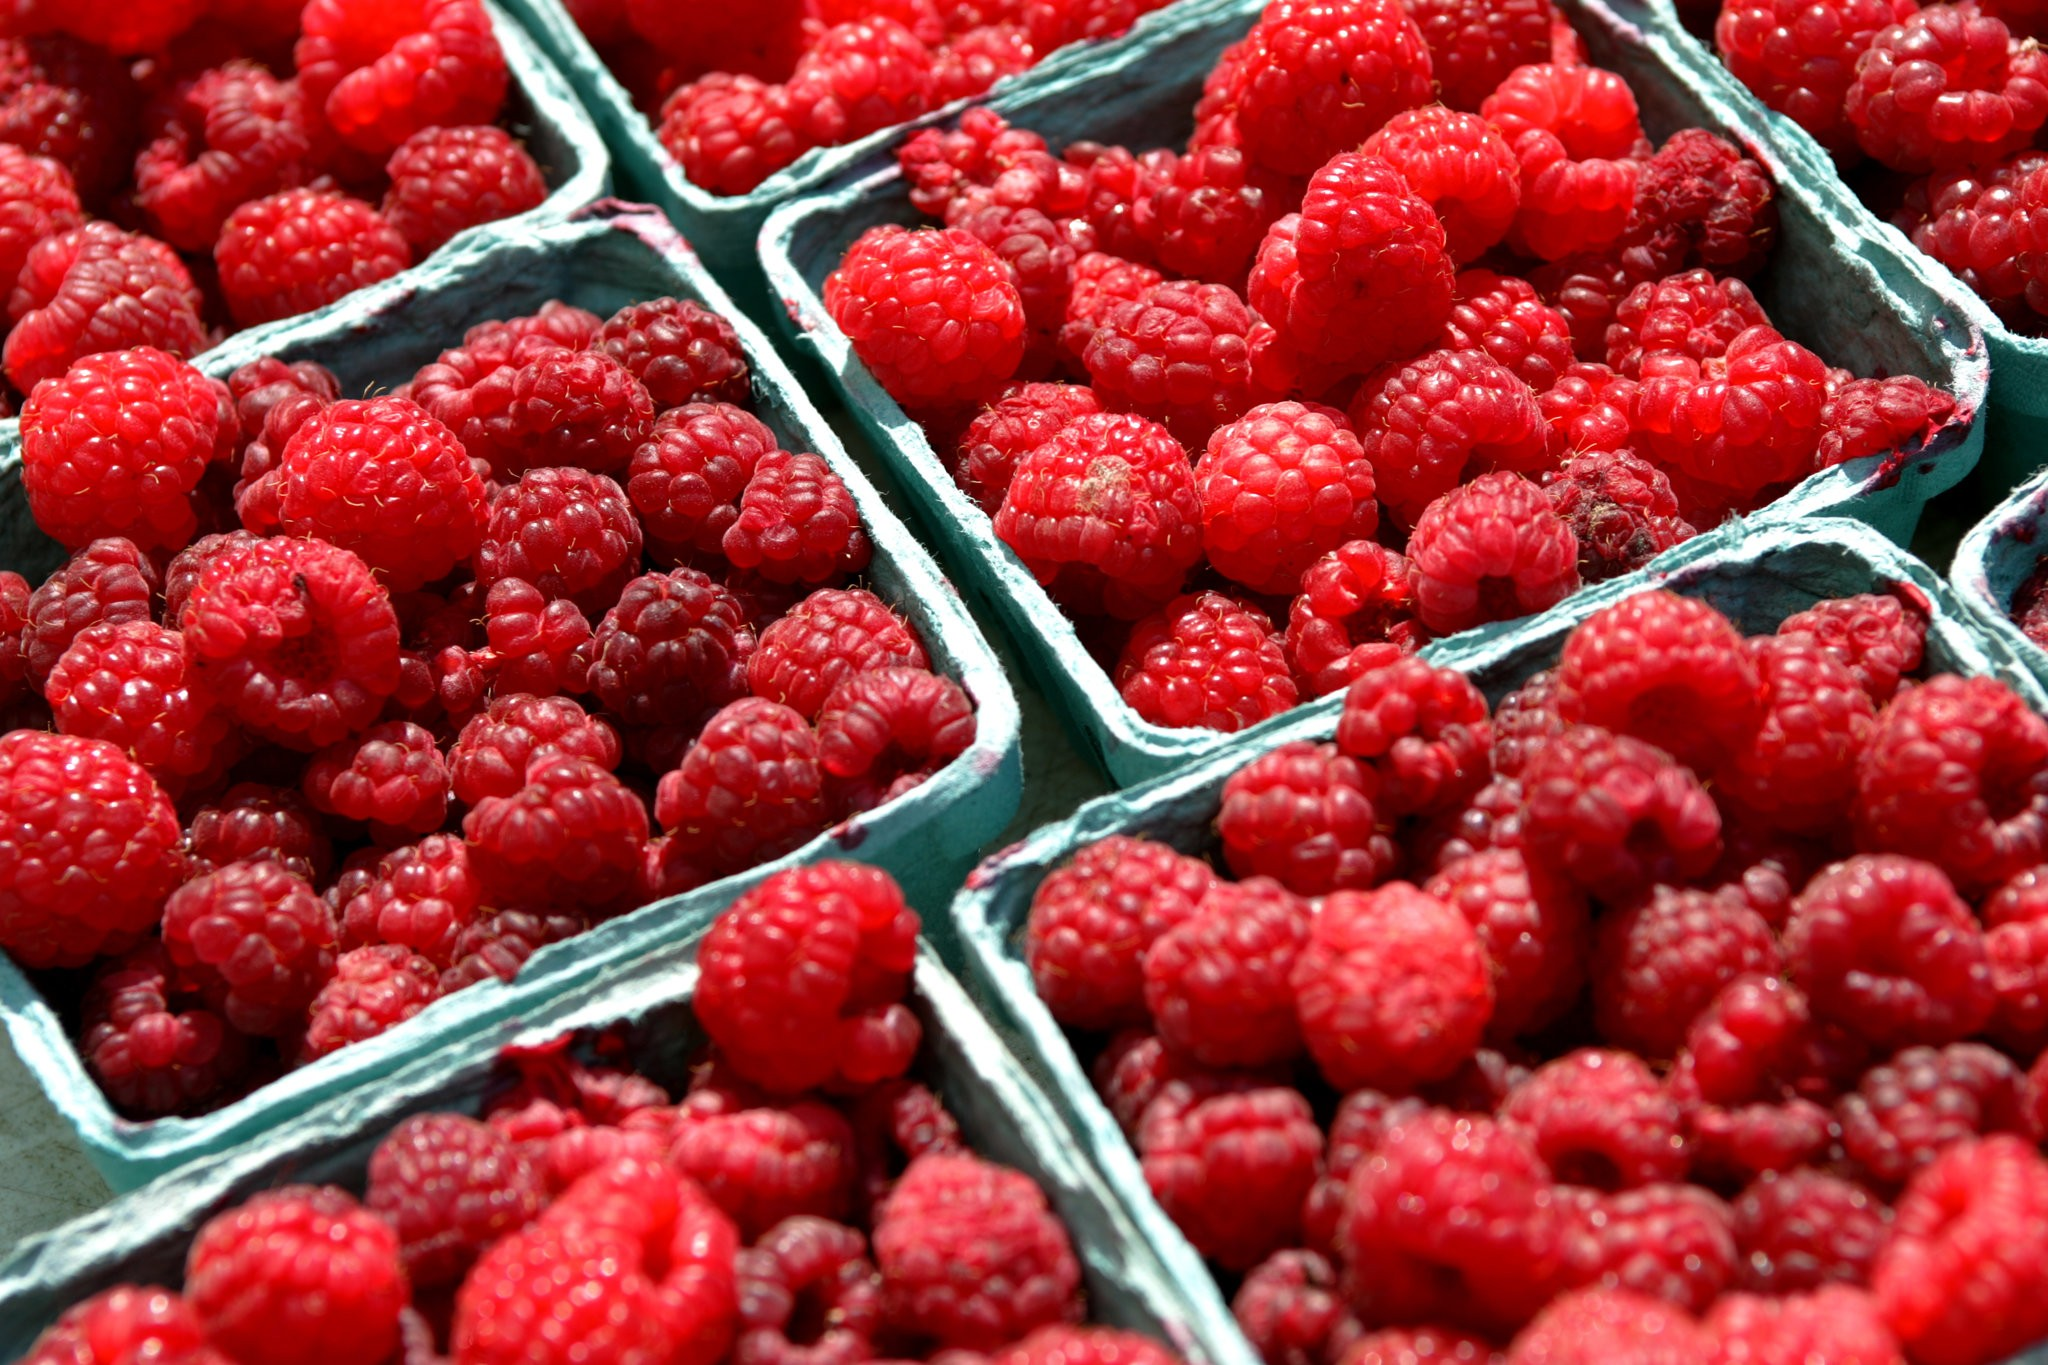 Some farmers in upstate New York have given up on raspberries after uncontrollable waves of the spotted wing Drosophila, a fruit fly whose larvae can turn berries to mush. Credit Jessica Ebelhar/The New York Times